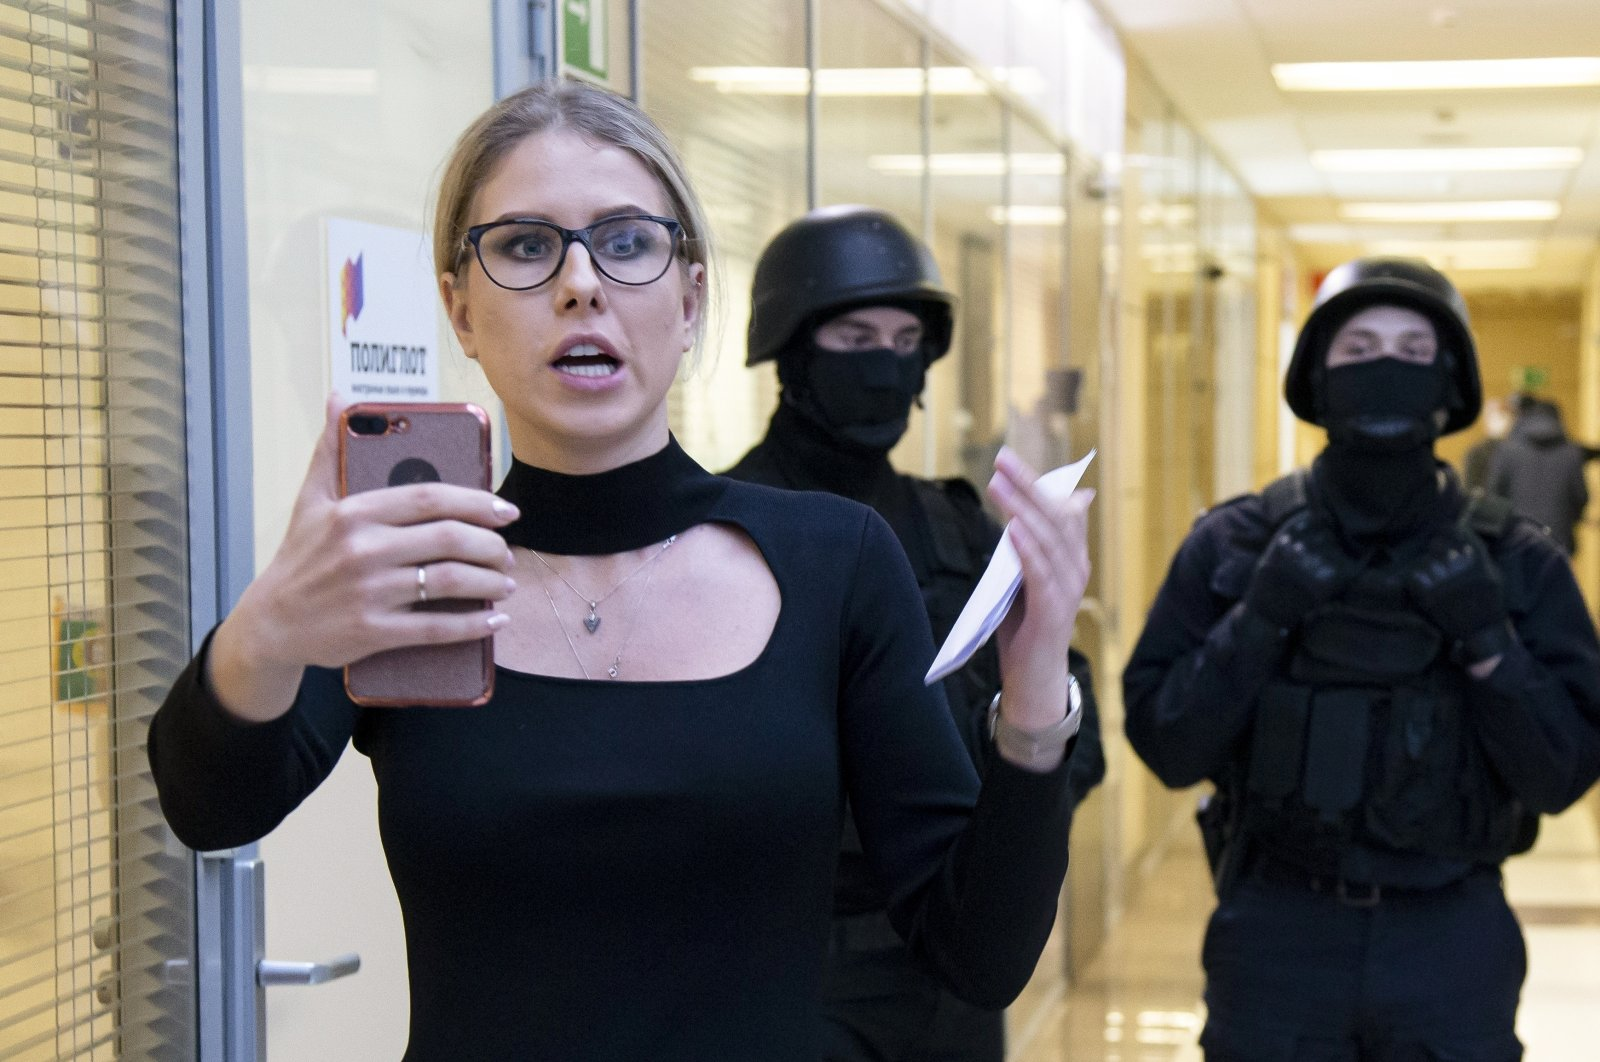 Russian opposition activist Lyubov Sobol speaks on the phone as police stand guard at the Foundation for Fighting Corruption office in Moscow, Russia, Dec. 26, 2019. (AP Photo)